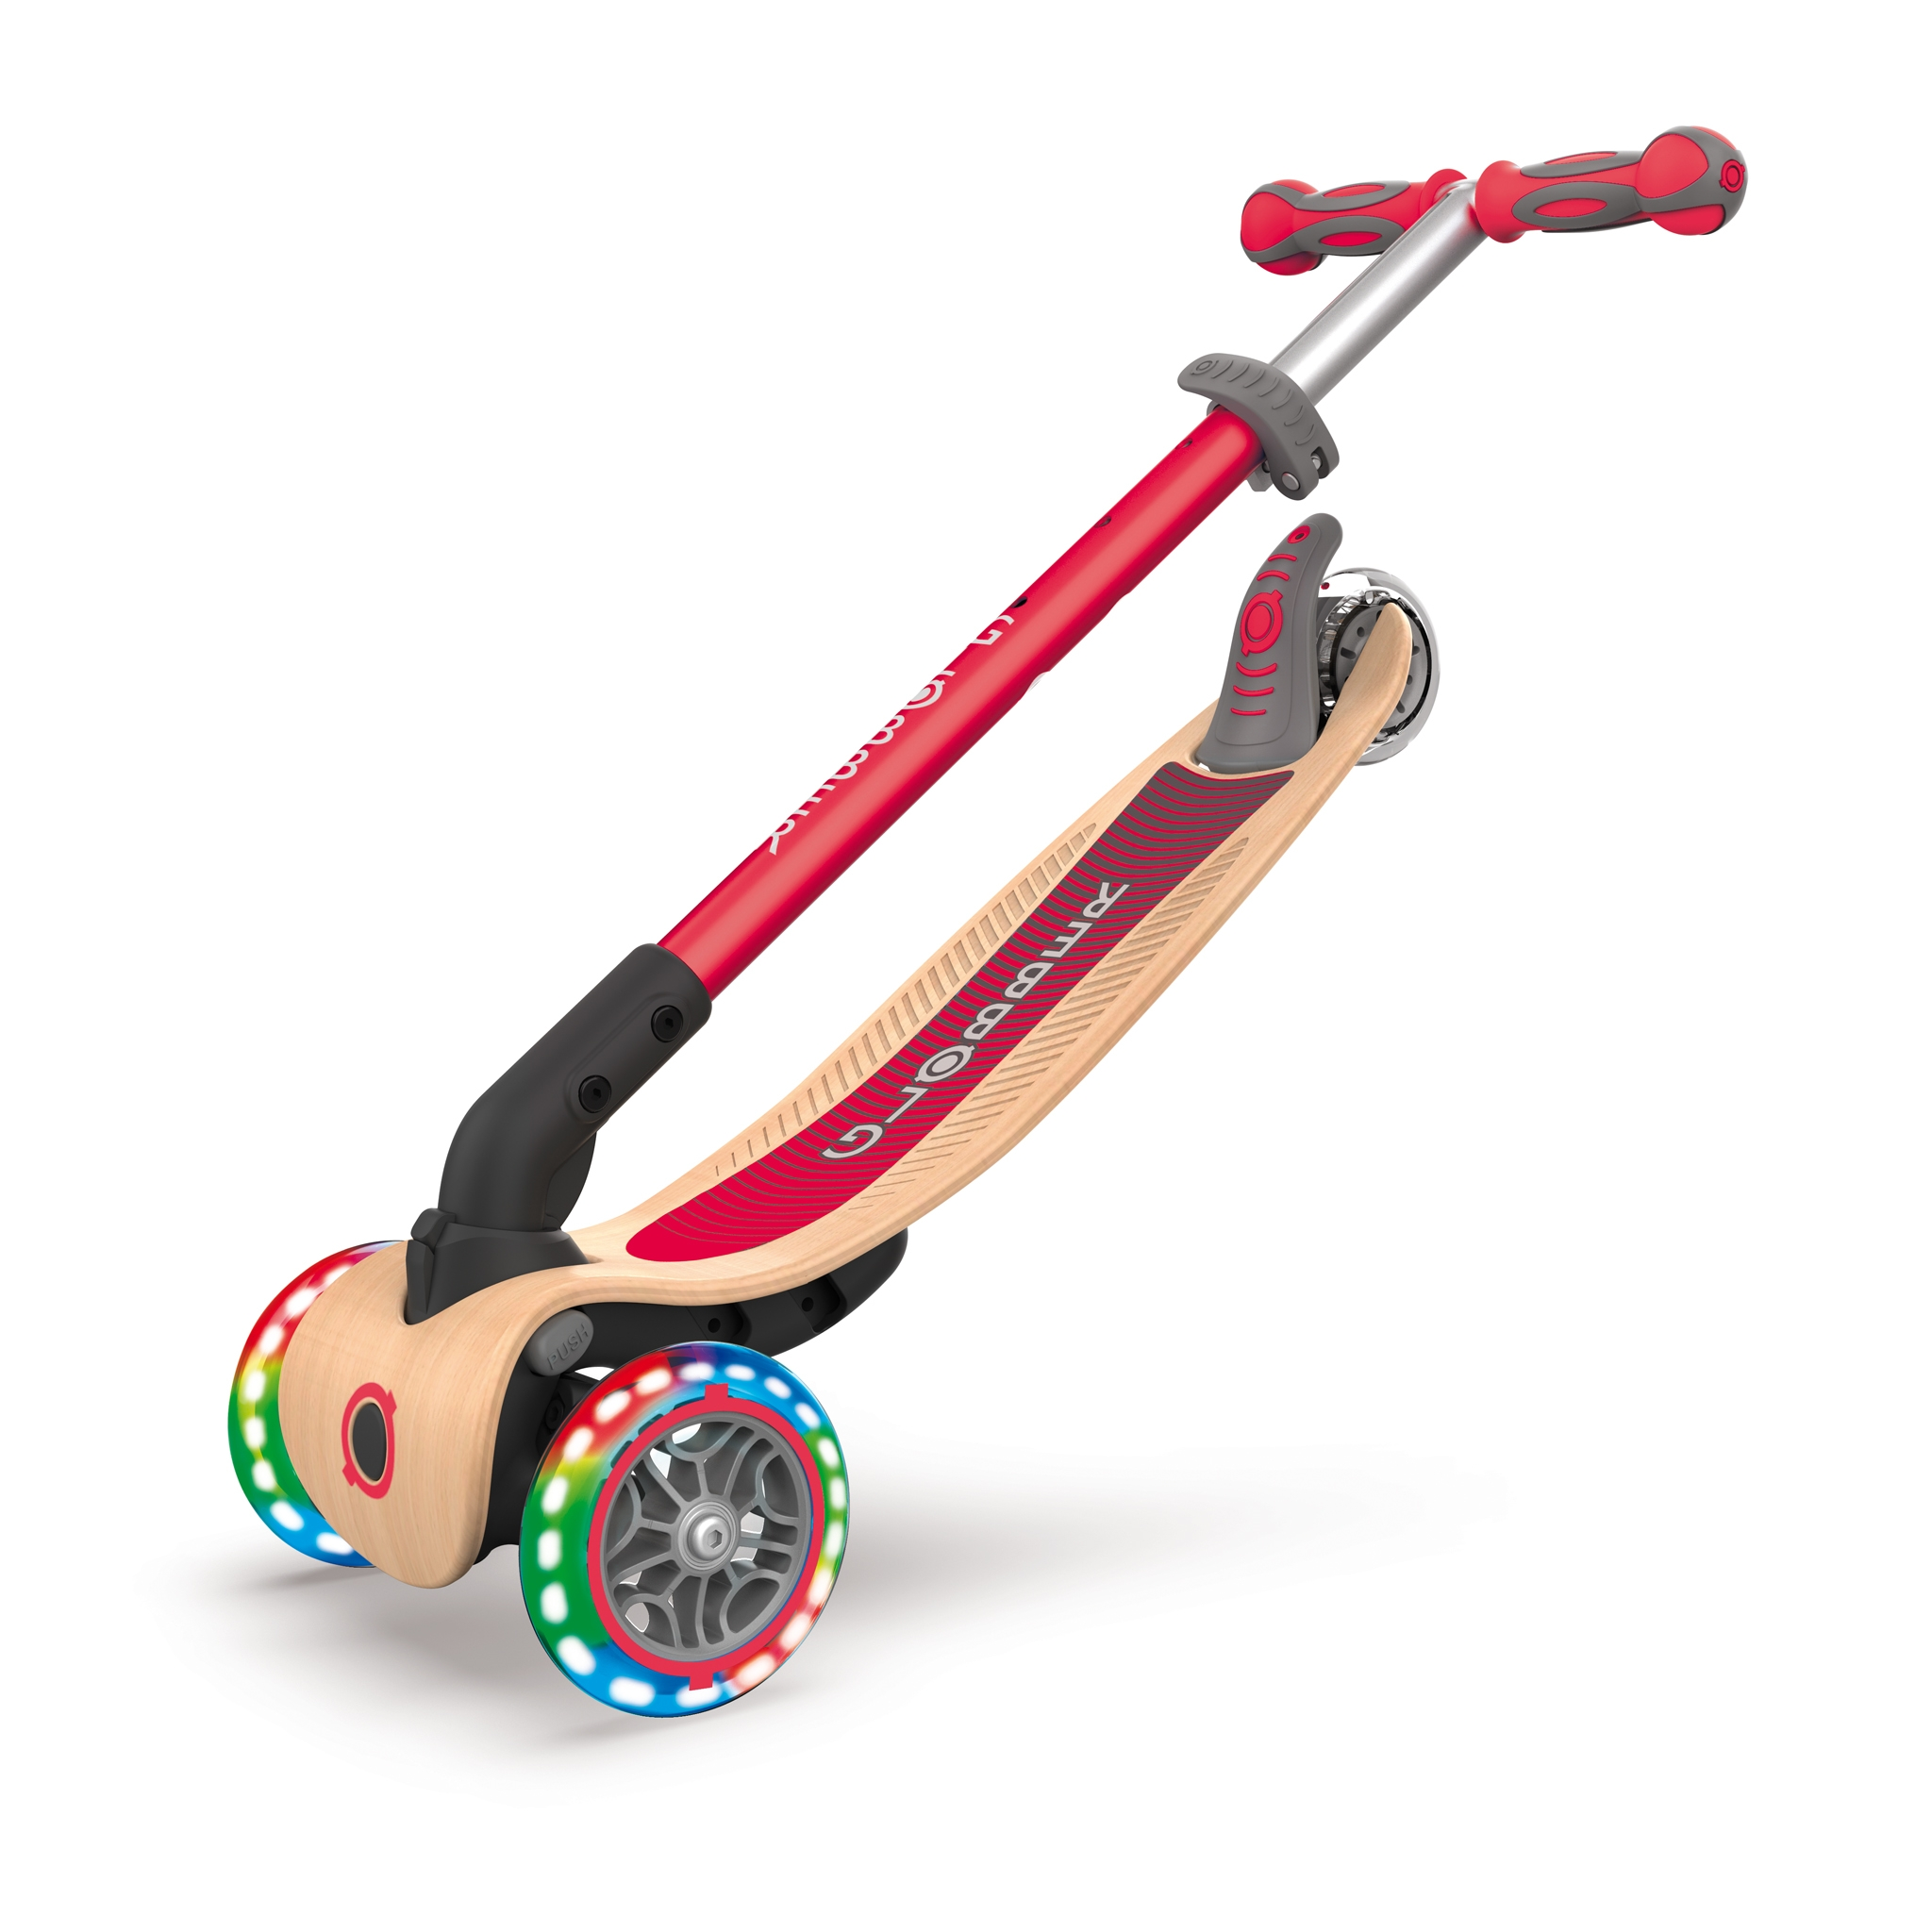 PRIMO-FOLDABLE-WOOD-LIGHTS-3-wheel-foldable-light-up-scooter-with-7-ply-wooden-scooter-deck-trolley-mode-compatible_new-red